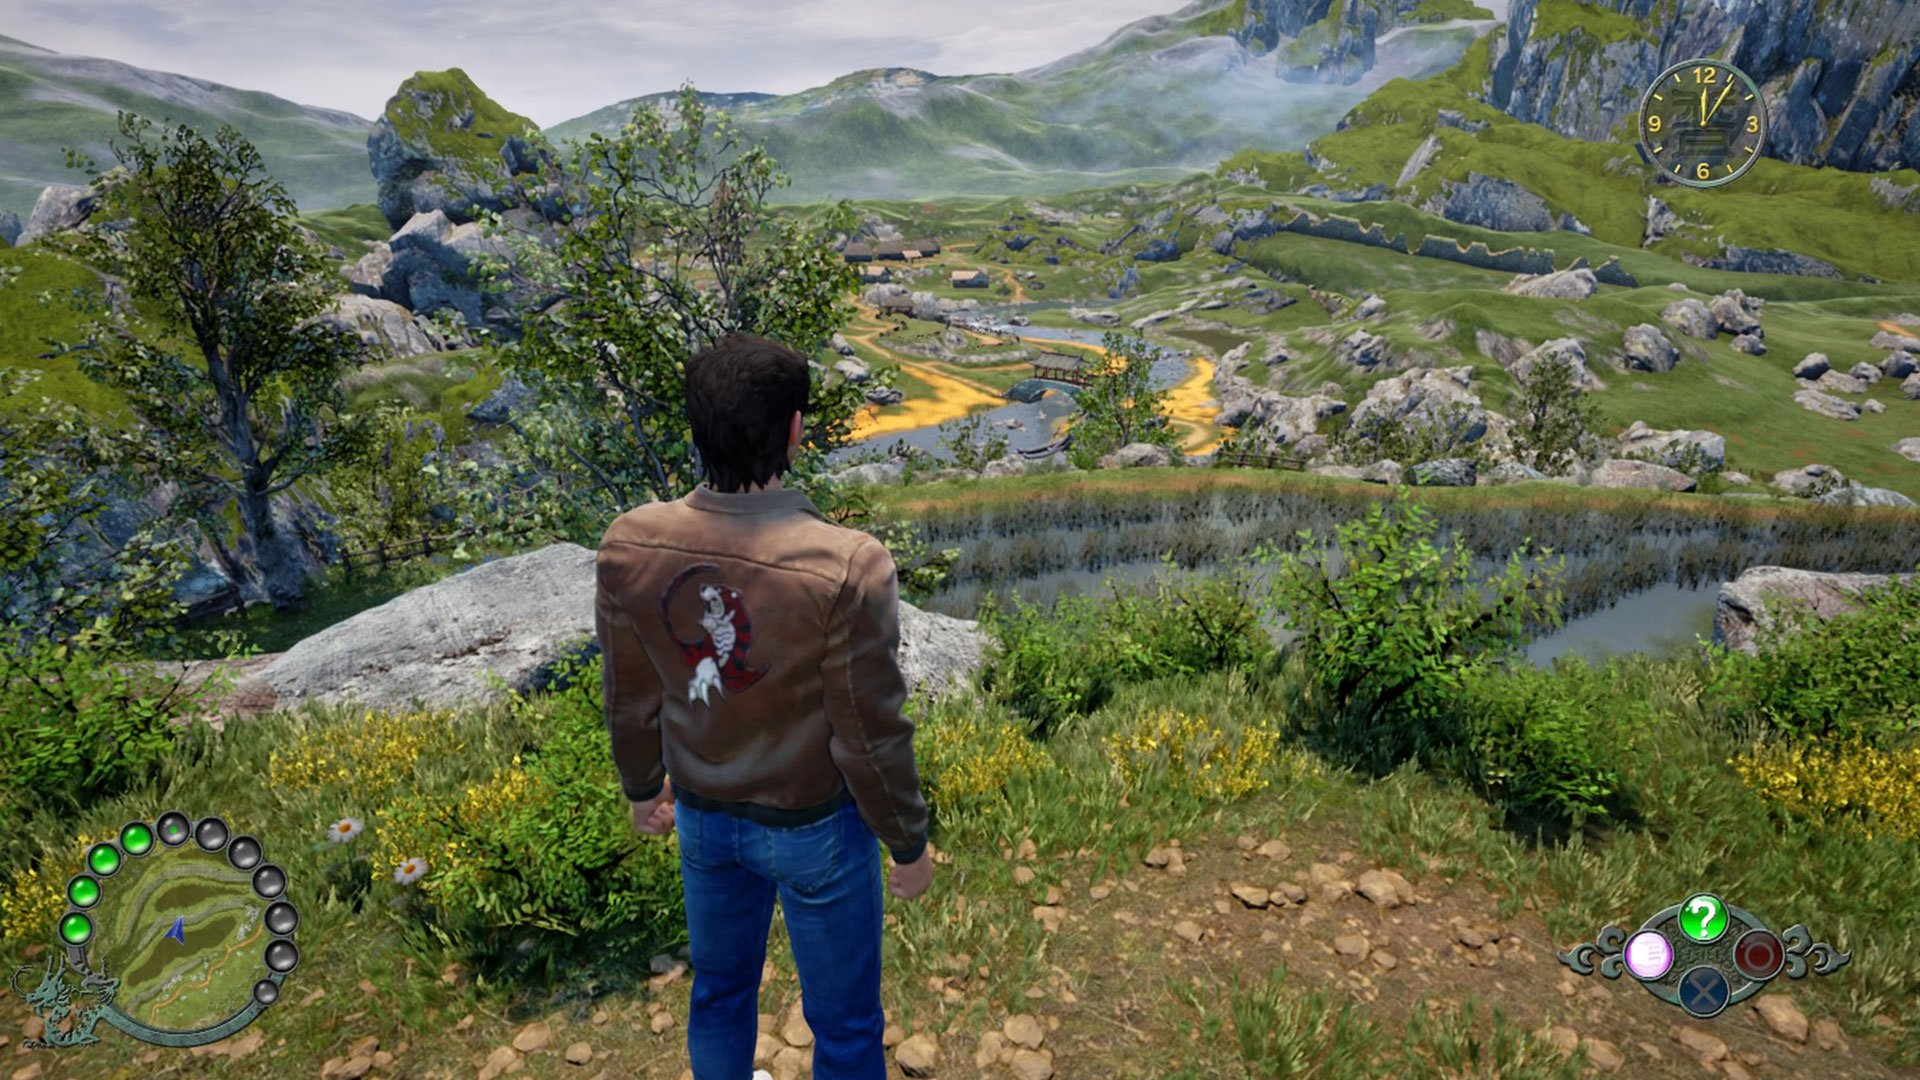 How to save in Shenmue 3